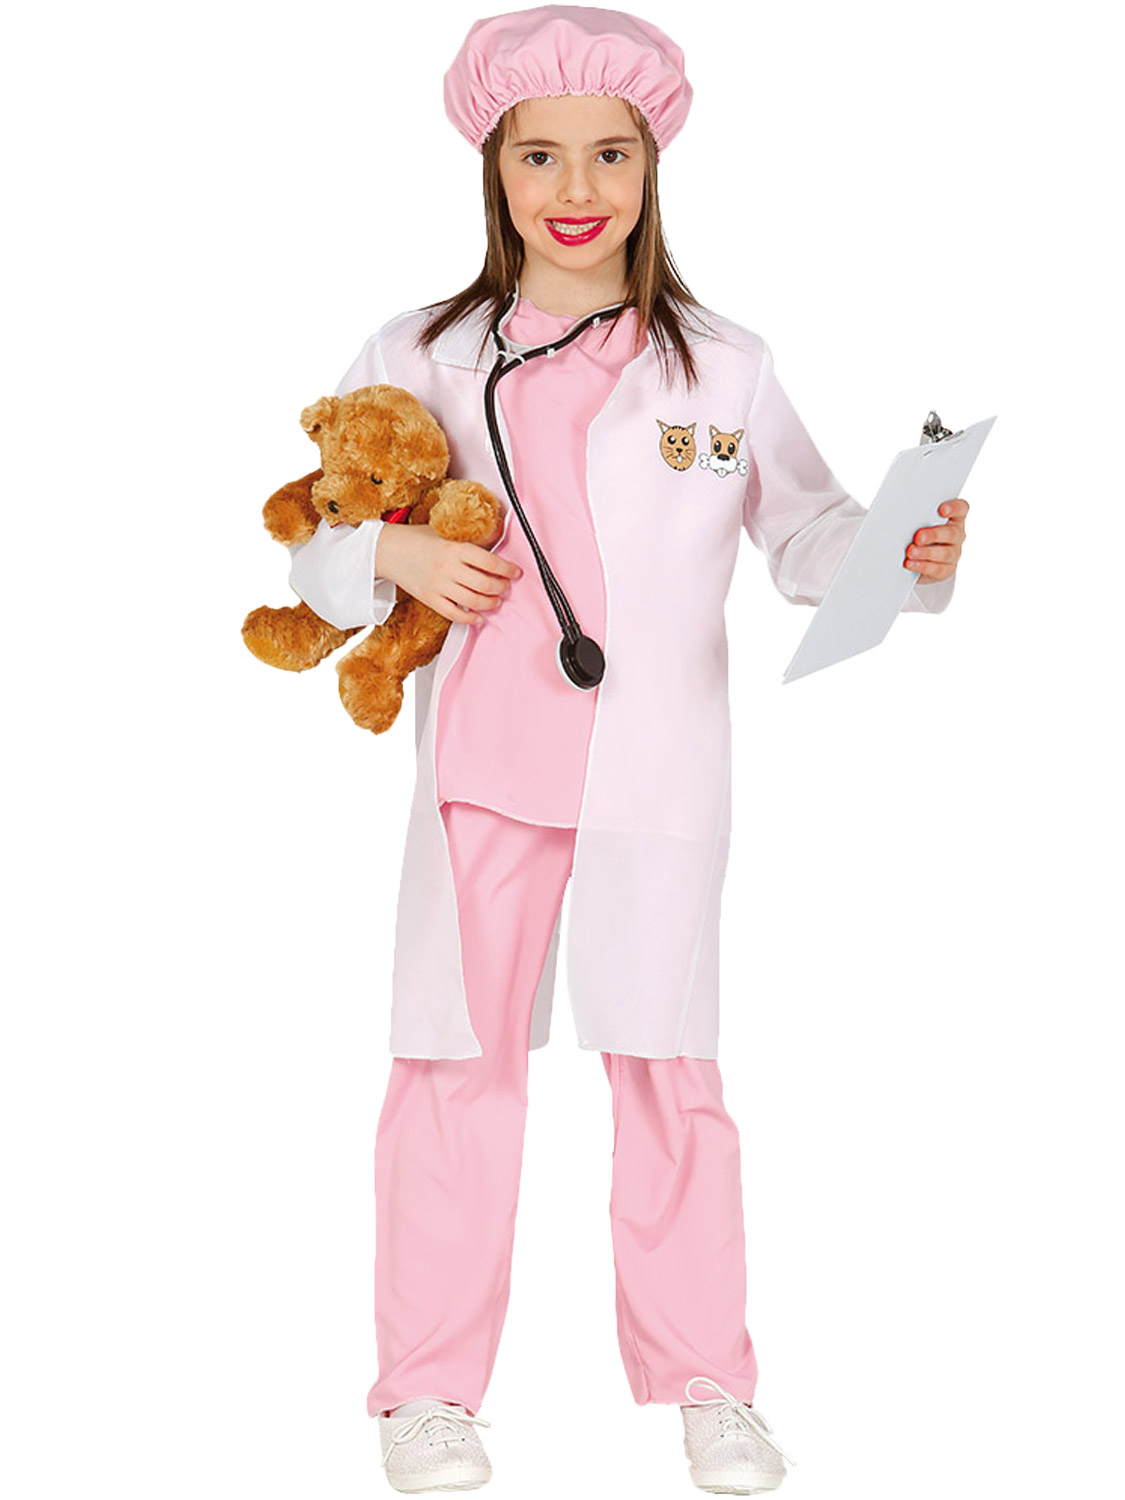 Girls-Vet-Costume-Childs-Animal-Doctor-Fancy-Dress-Kids-Book-Week-Day-Outfit 縮圖 8